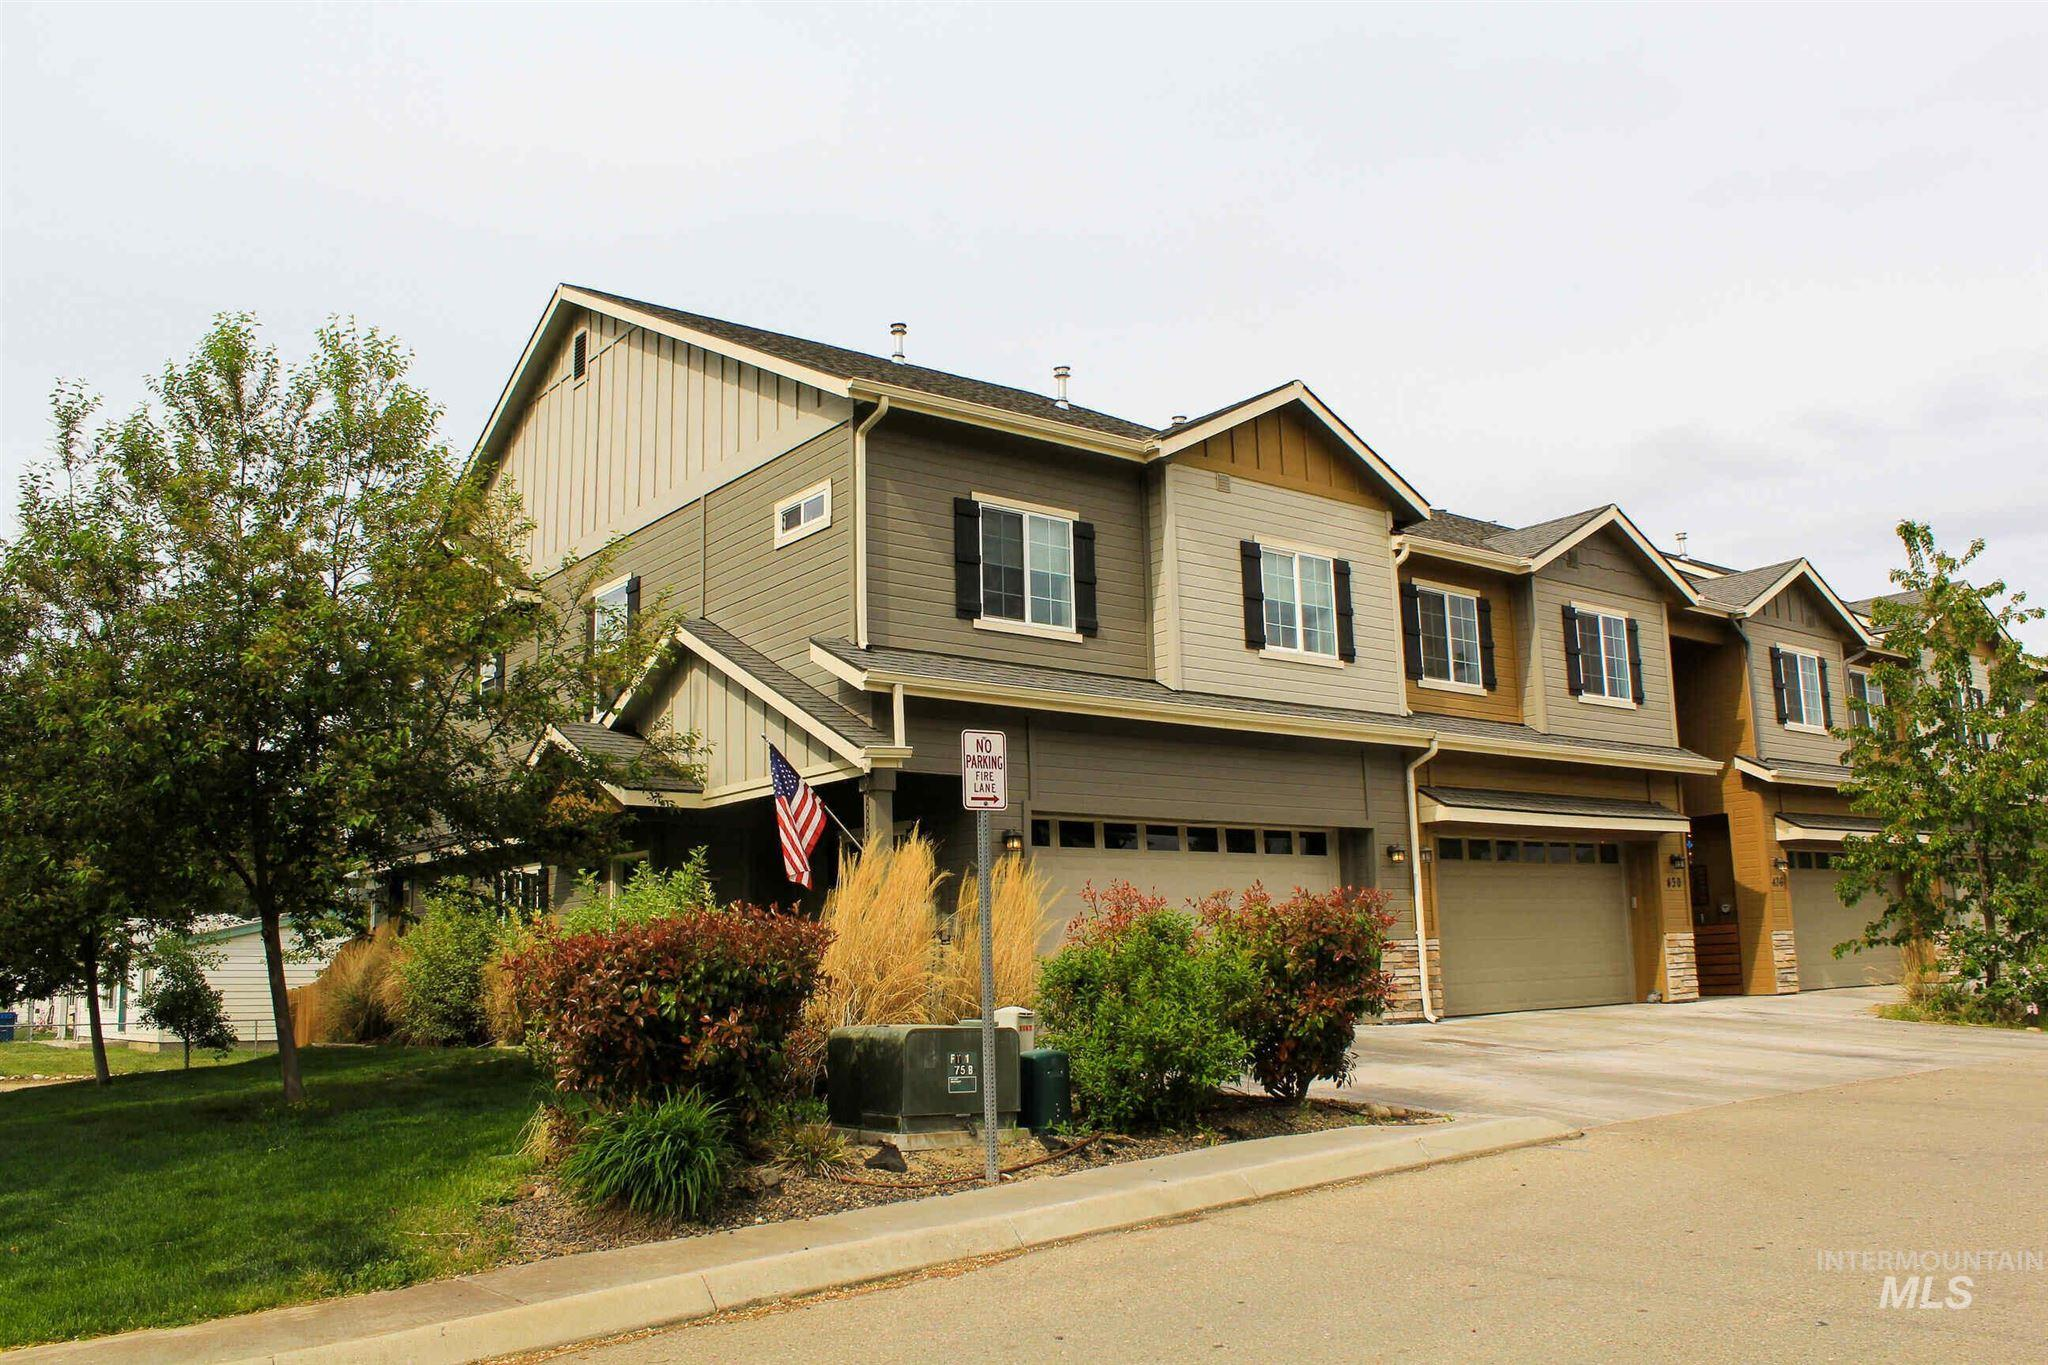 424 E 51ST Property Photo - Garden City, ID real estate listing